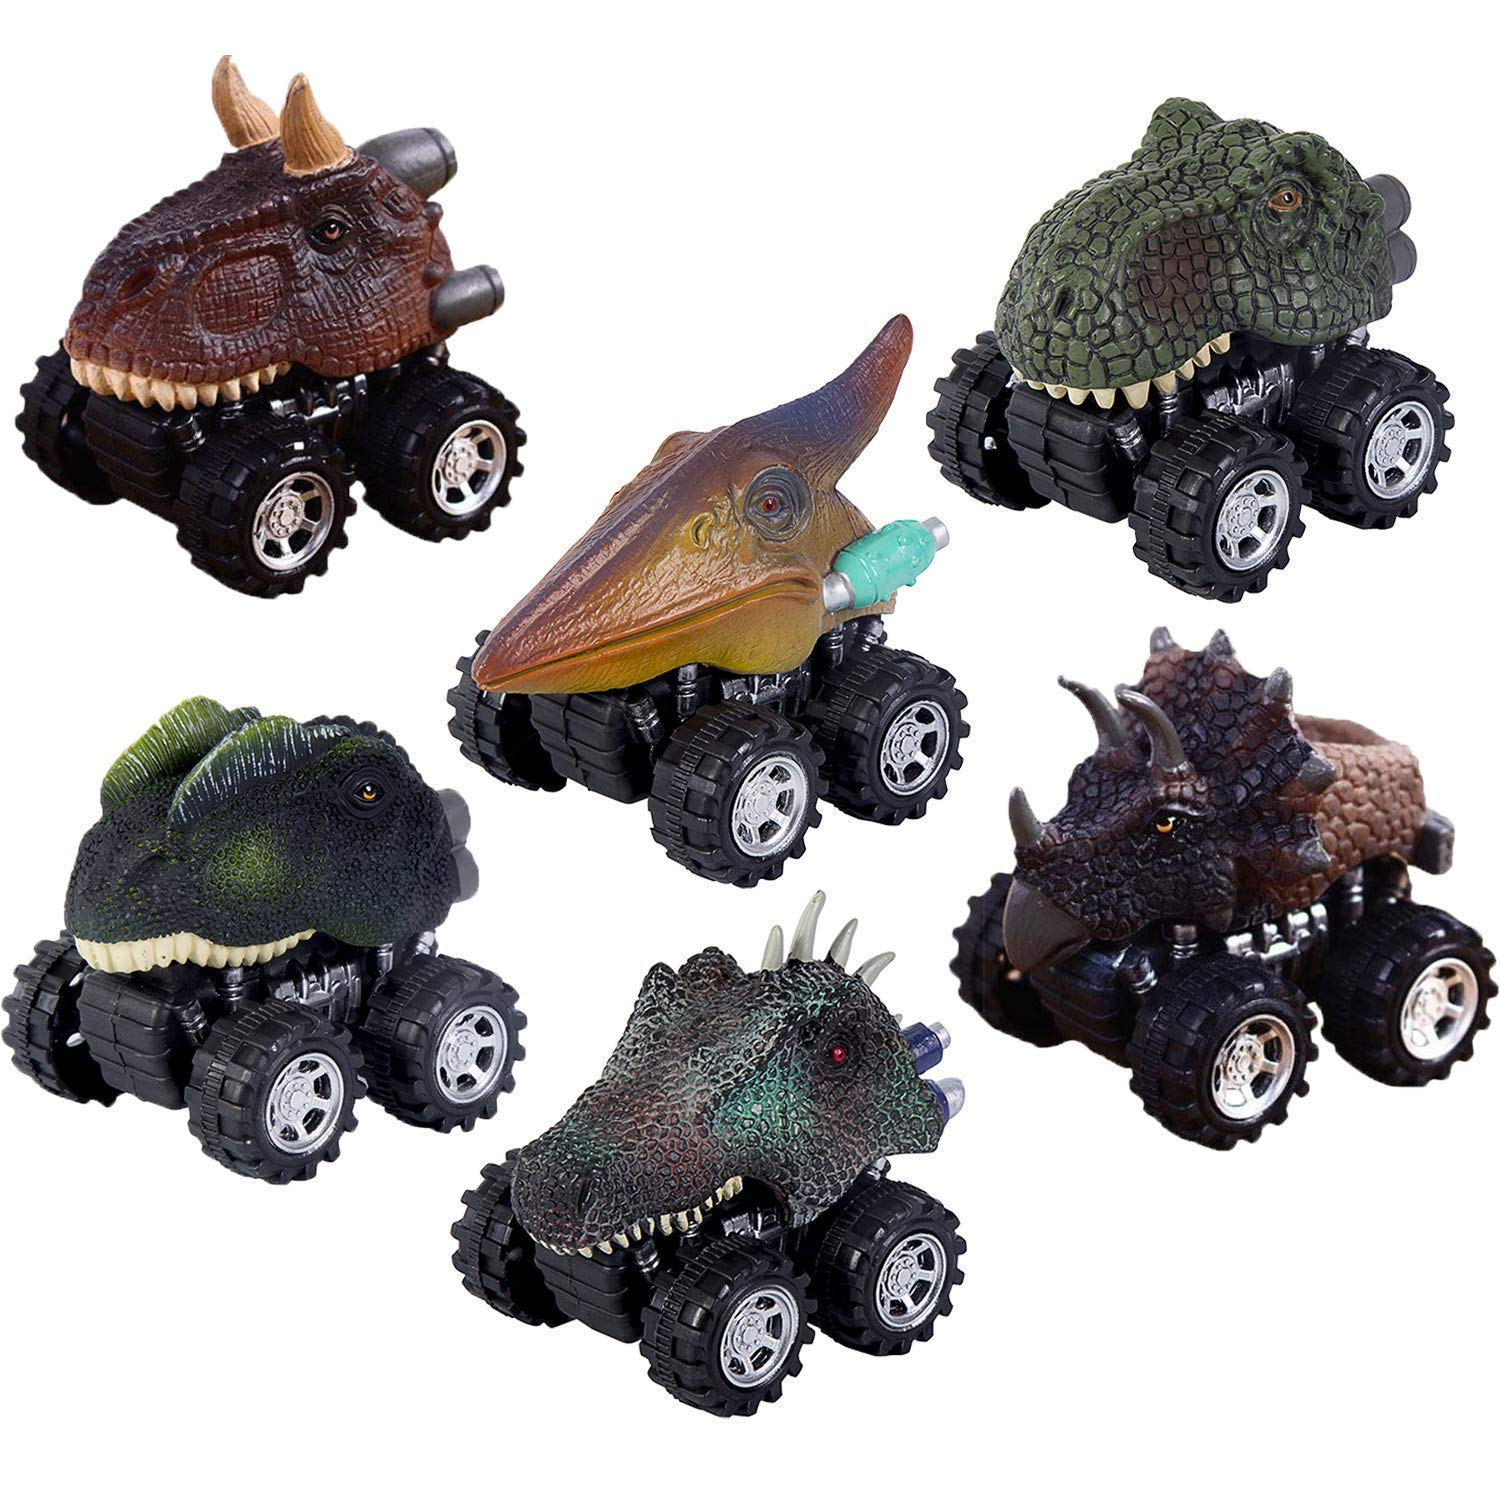 Aptoys Pull Back Dinosaur Cars 6-Pack Non-Toxic Plastic Dinosaur Cars Toys with Big Tire Wheel for 3-14 Year Old Kids Boys Girls Creative Gifts